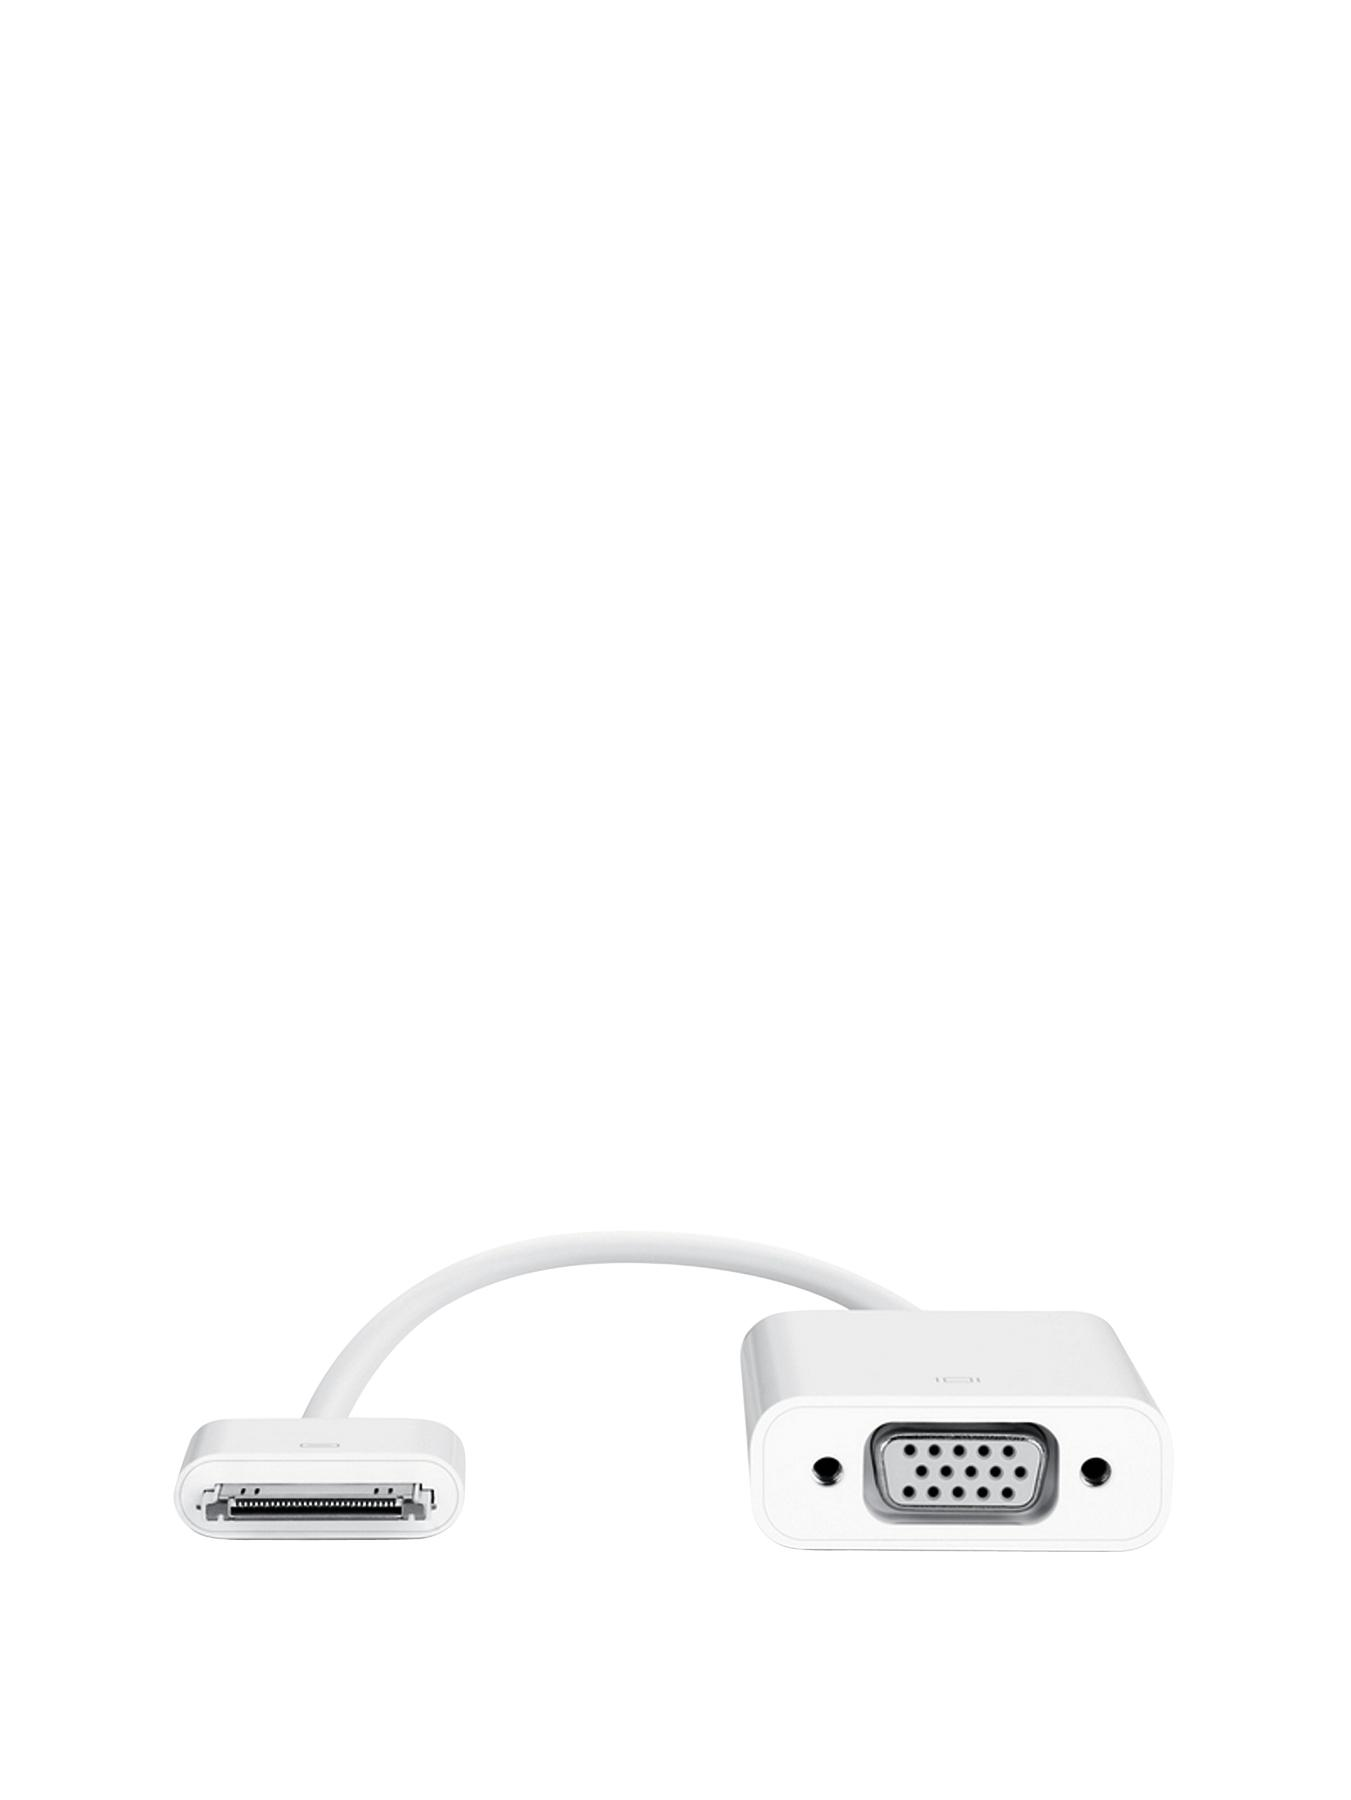 iPad 30-Pin Dock Connector to VGA Adapter